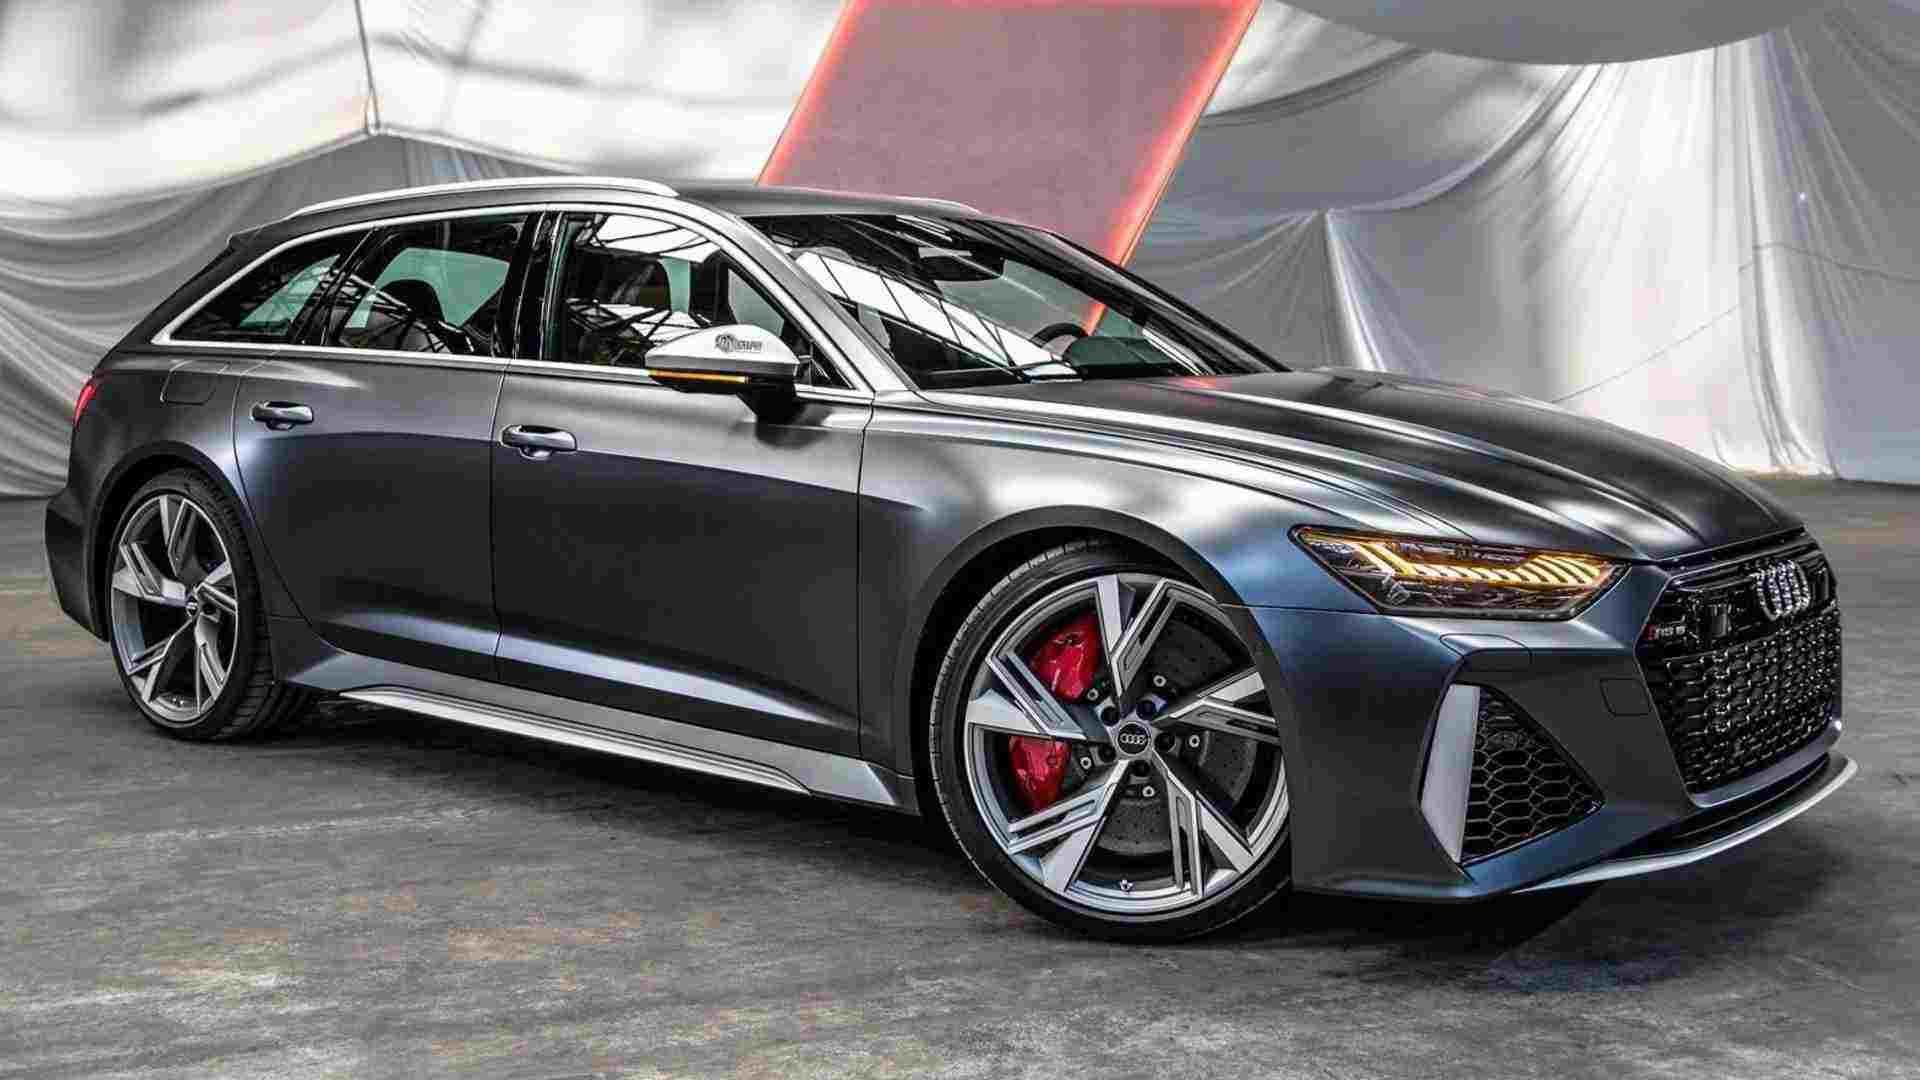 New Audi Rs6 Avant Review In 2020 Audi Rs6 Audi Wagon Audi Rs6 Wagon